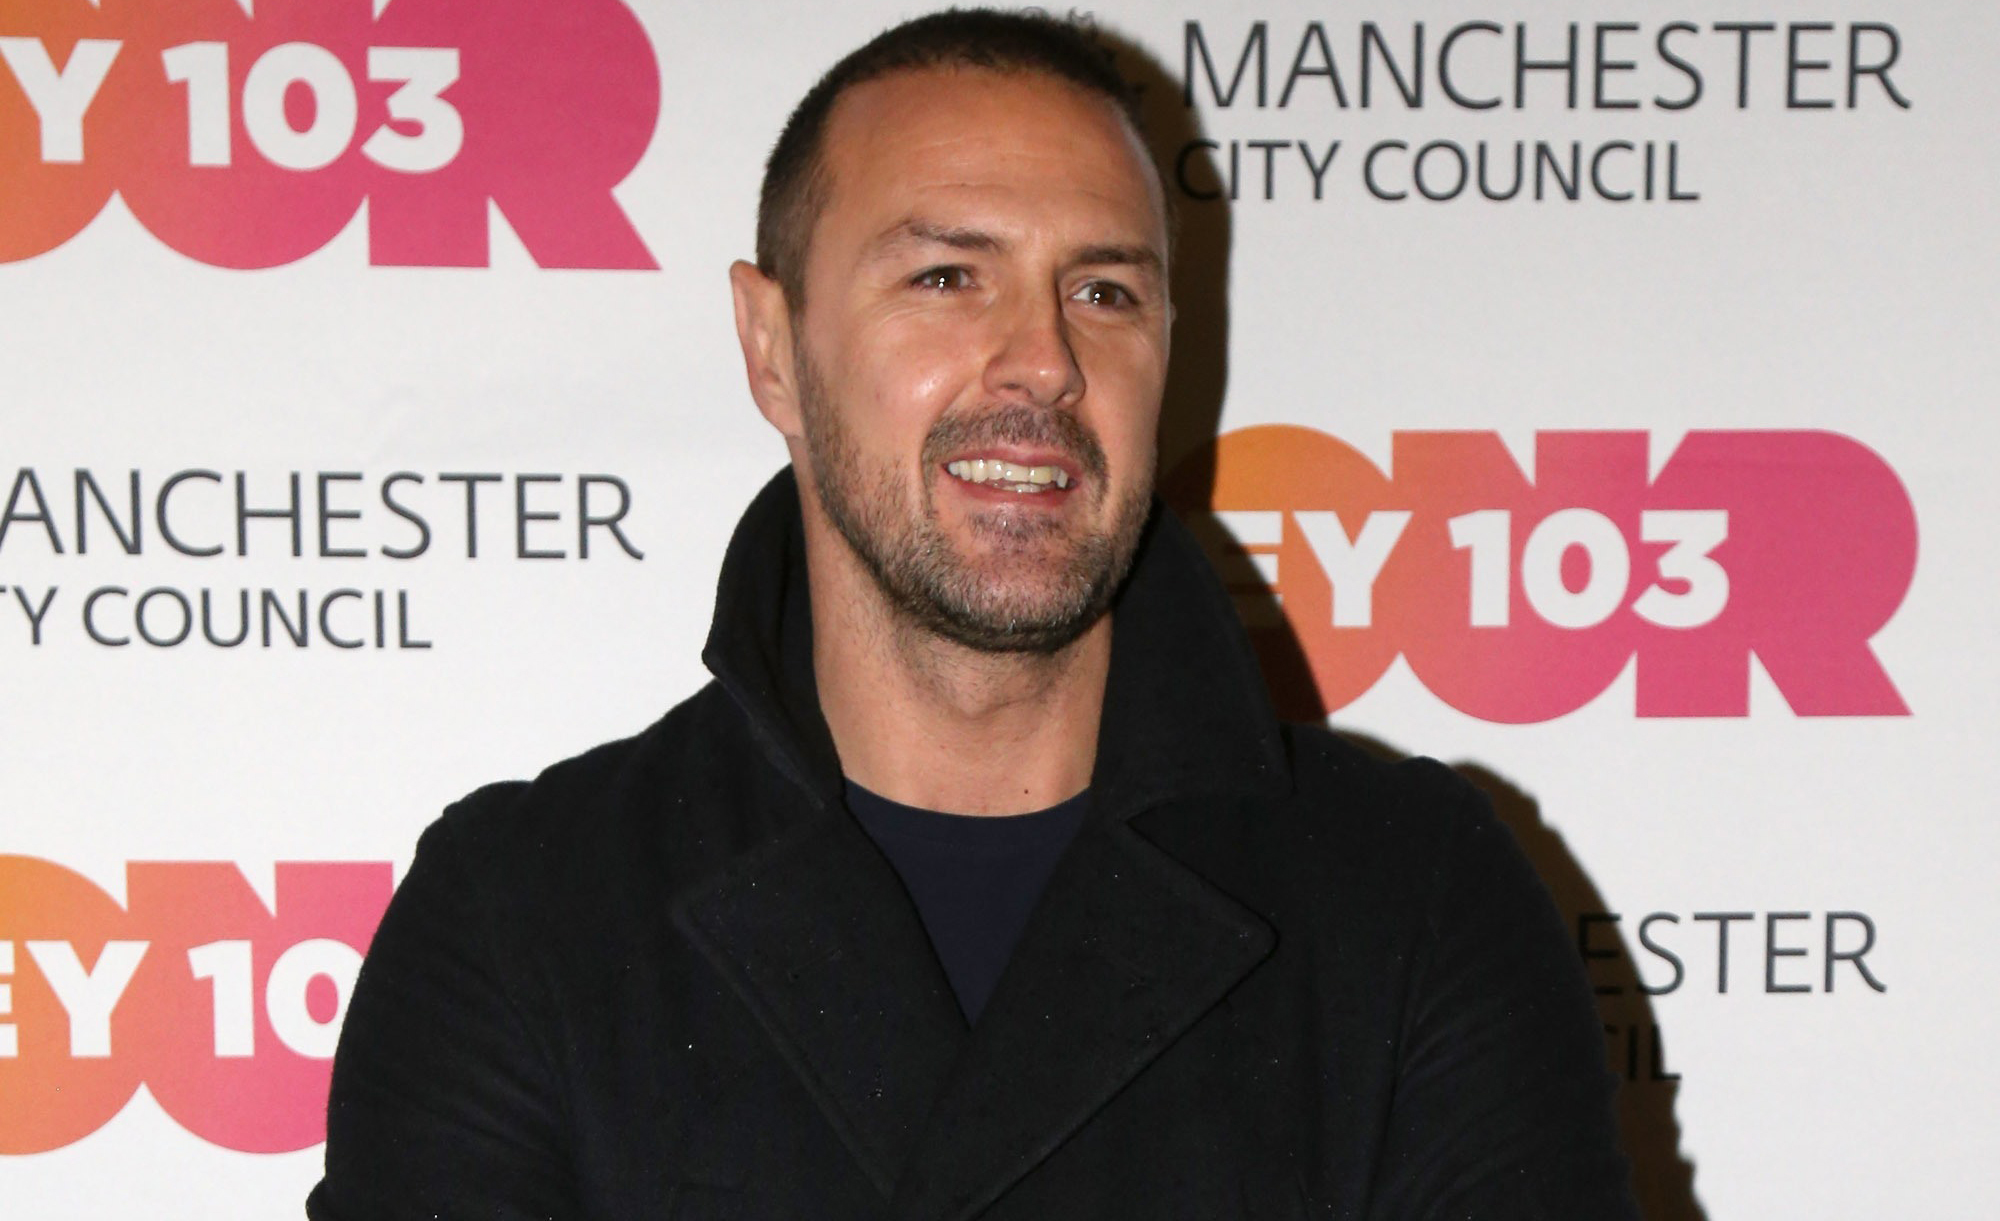 Paddy McGuinness shares rare photo with his sleepy son